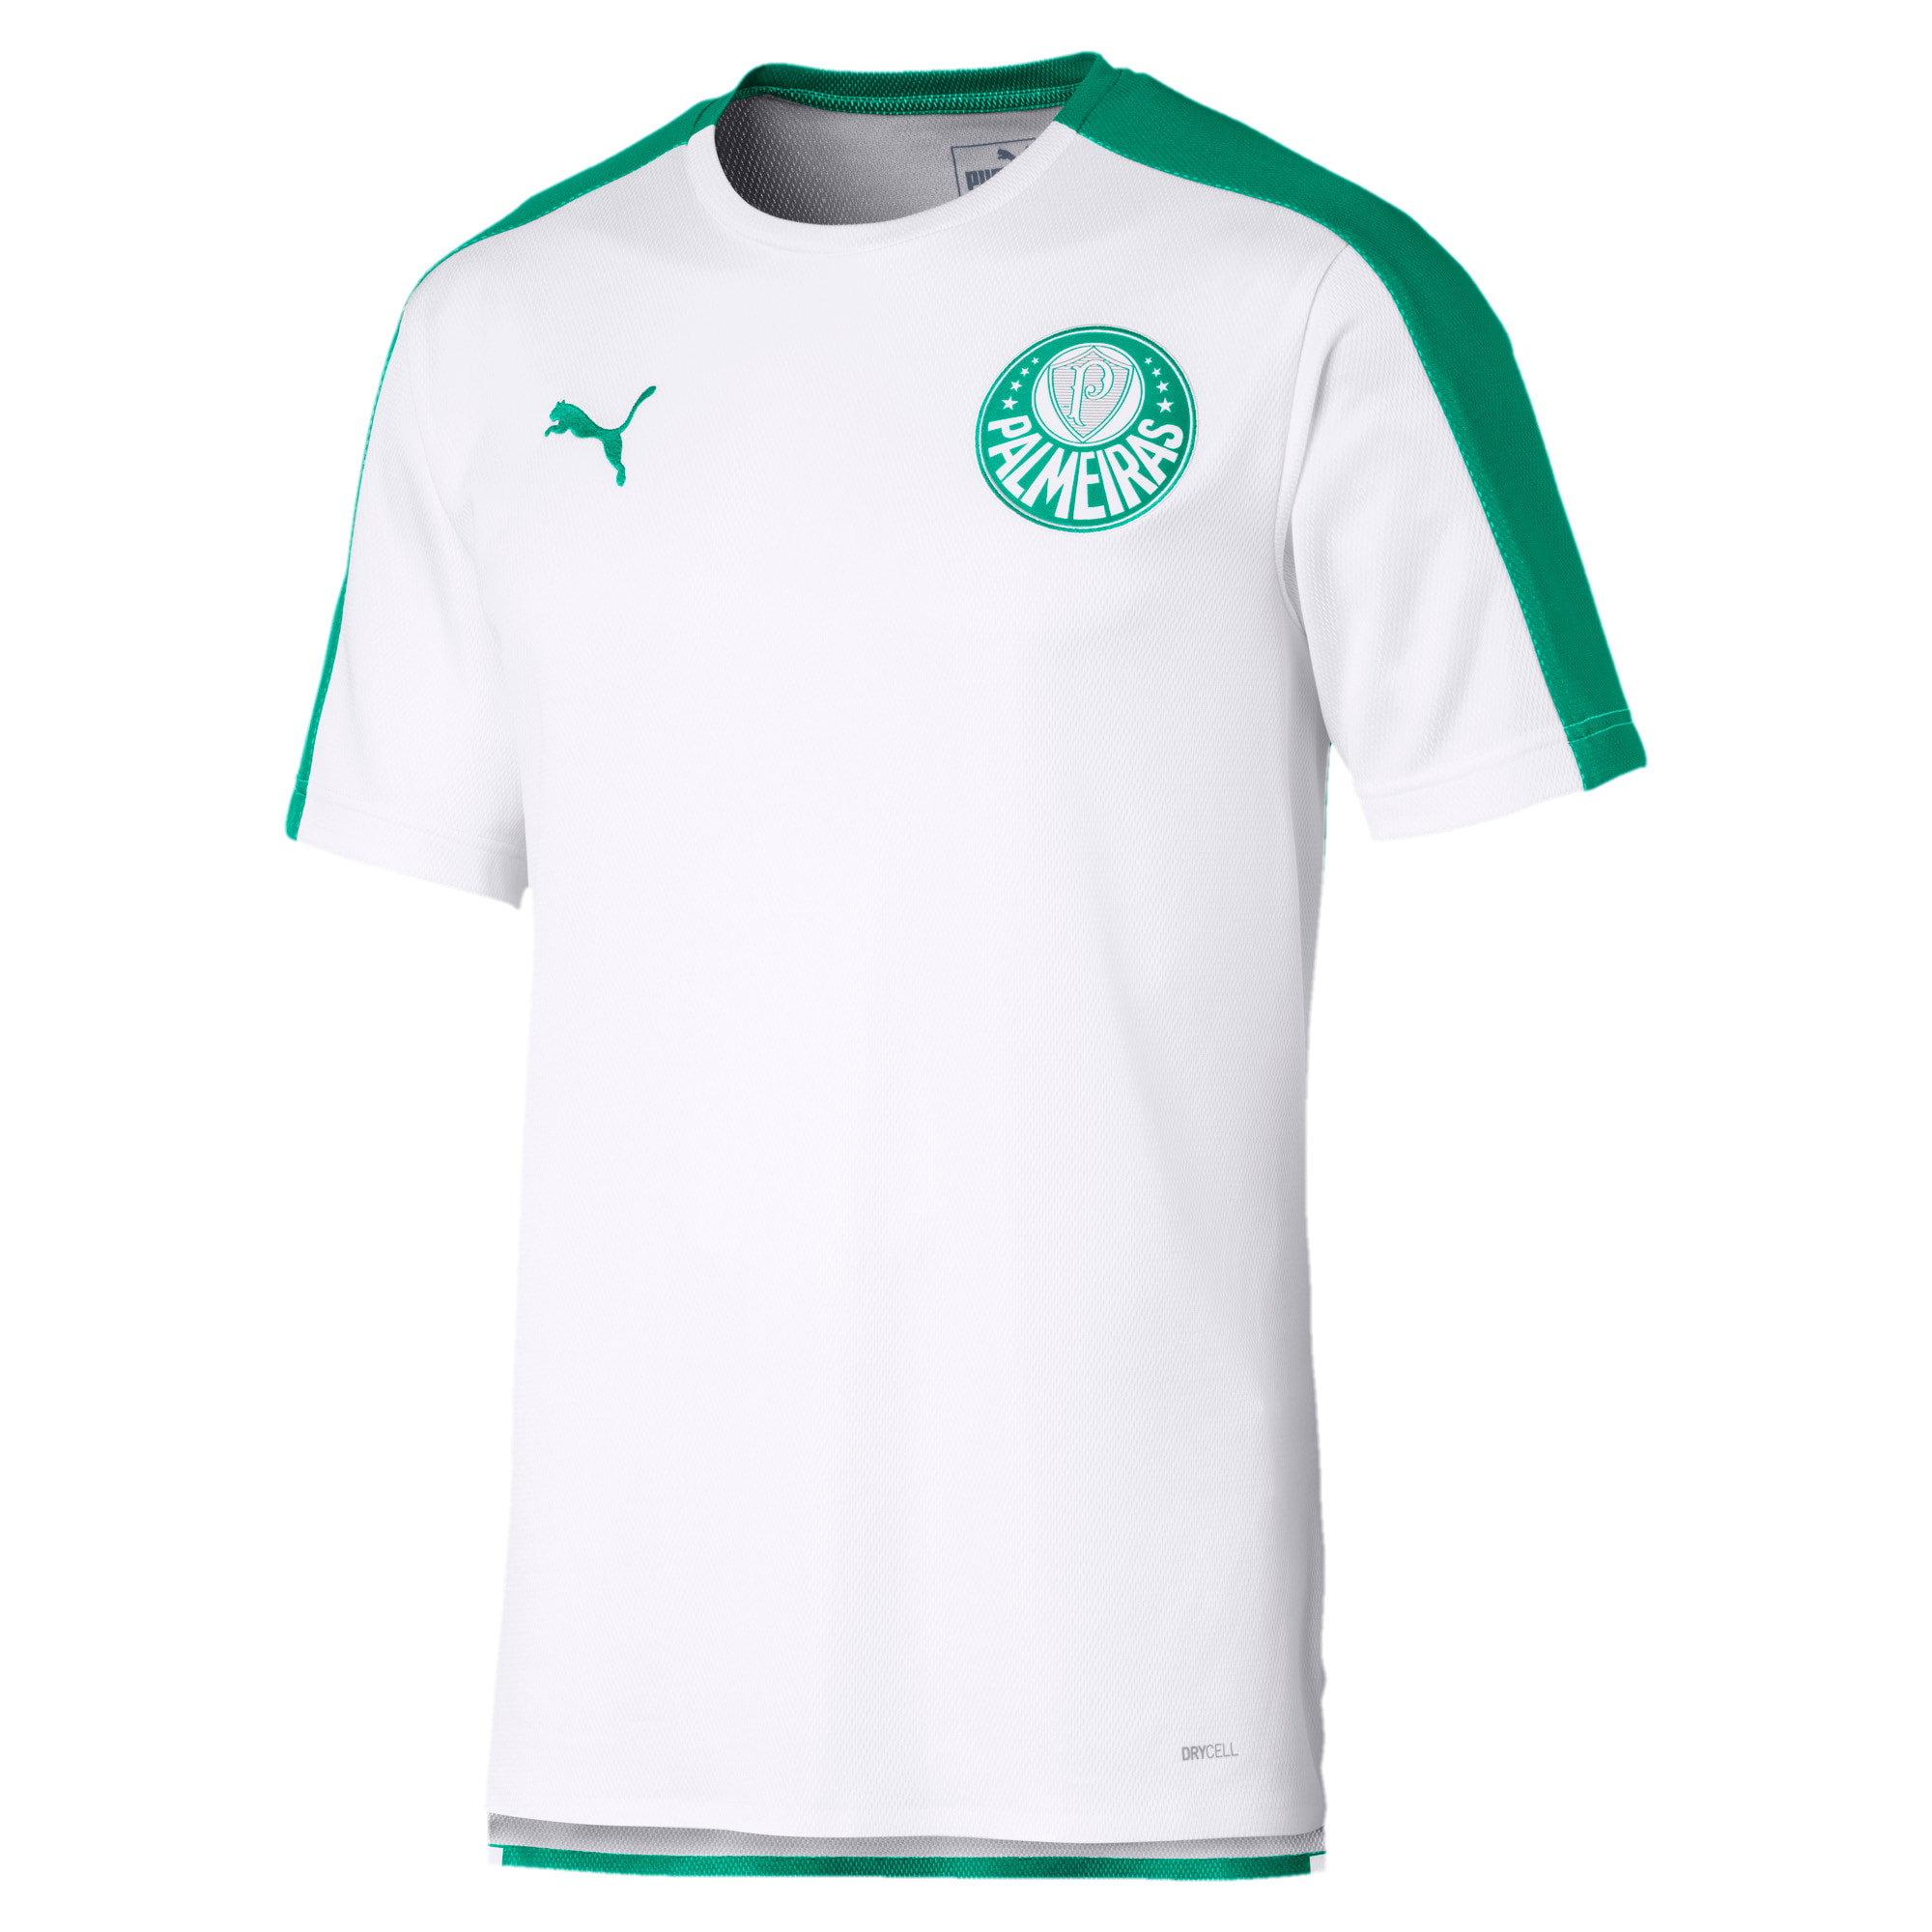 Thumbnail 1 of Palmeiras Stadium Tee, Puma White-Pepper Green, medium